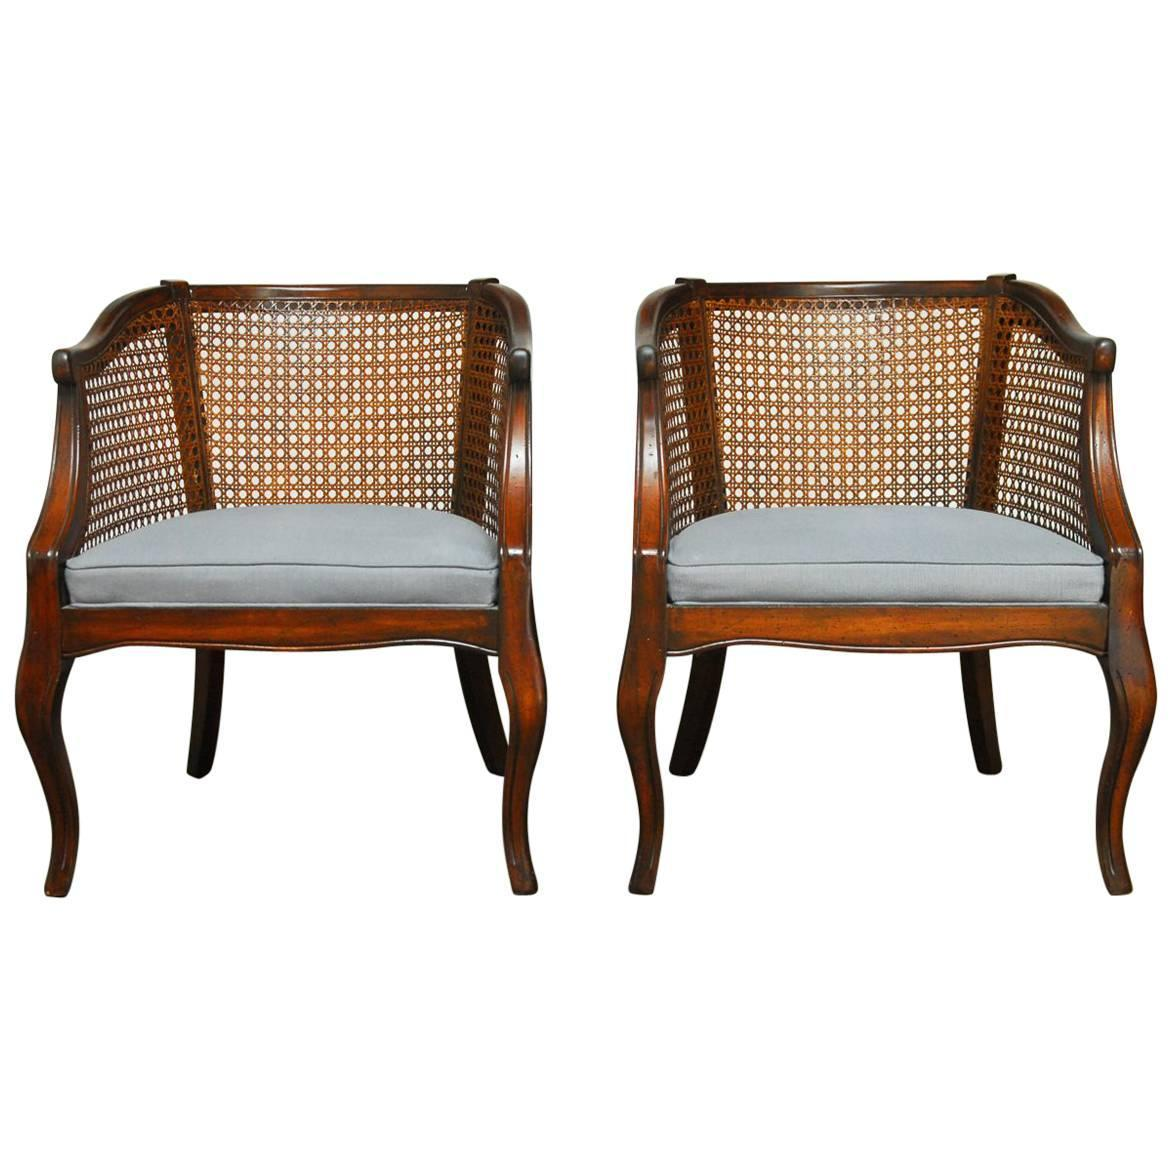 mid century cane barrel chair evenflo majestic high instruction manual pair of back chairs at 1stdibs